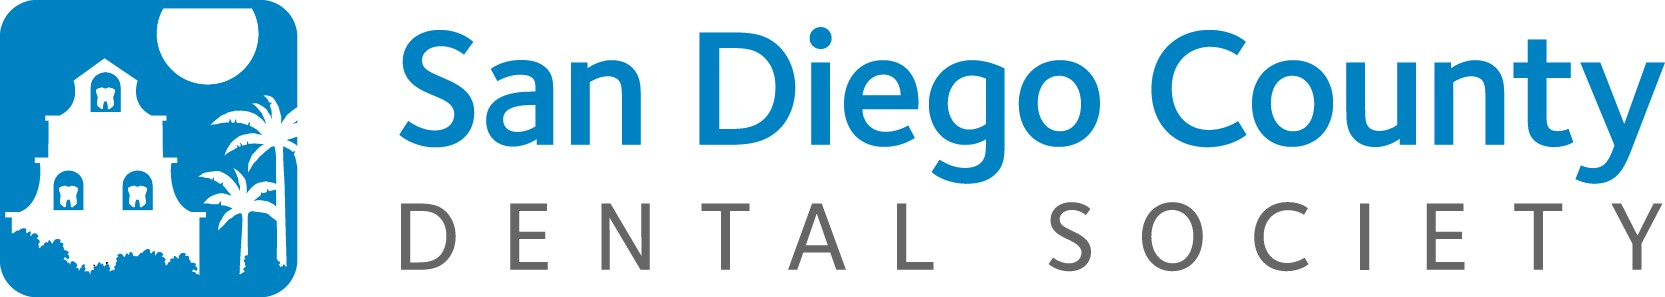 San Diego County Dental Society logo